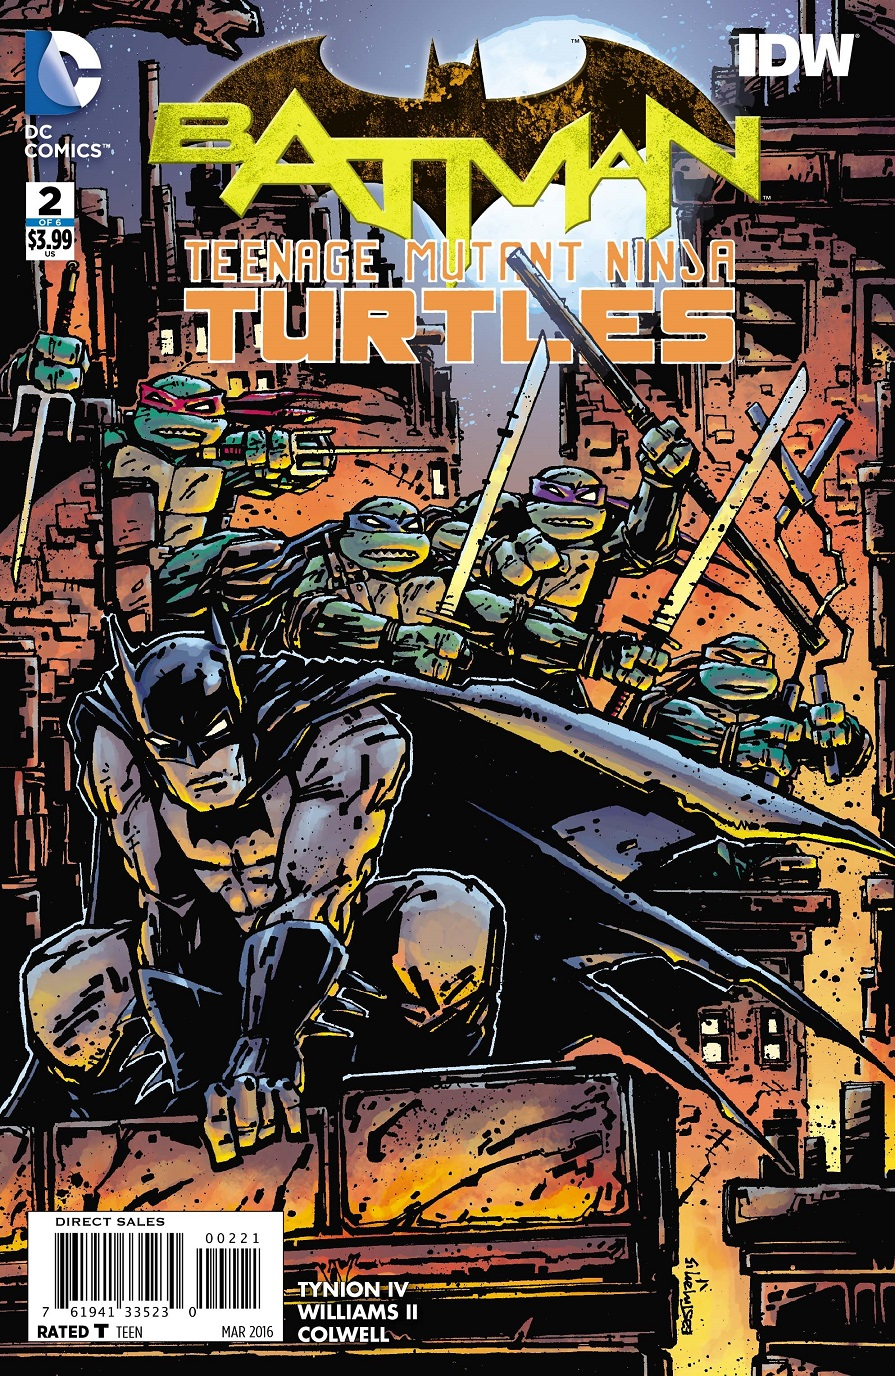 Batman Teenage Mutant Ninja Turtles Kevin Eastman Variant Cover